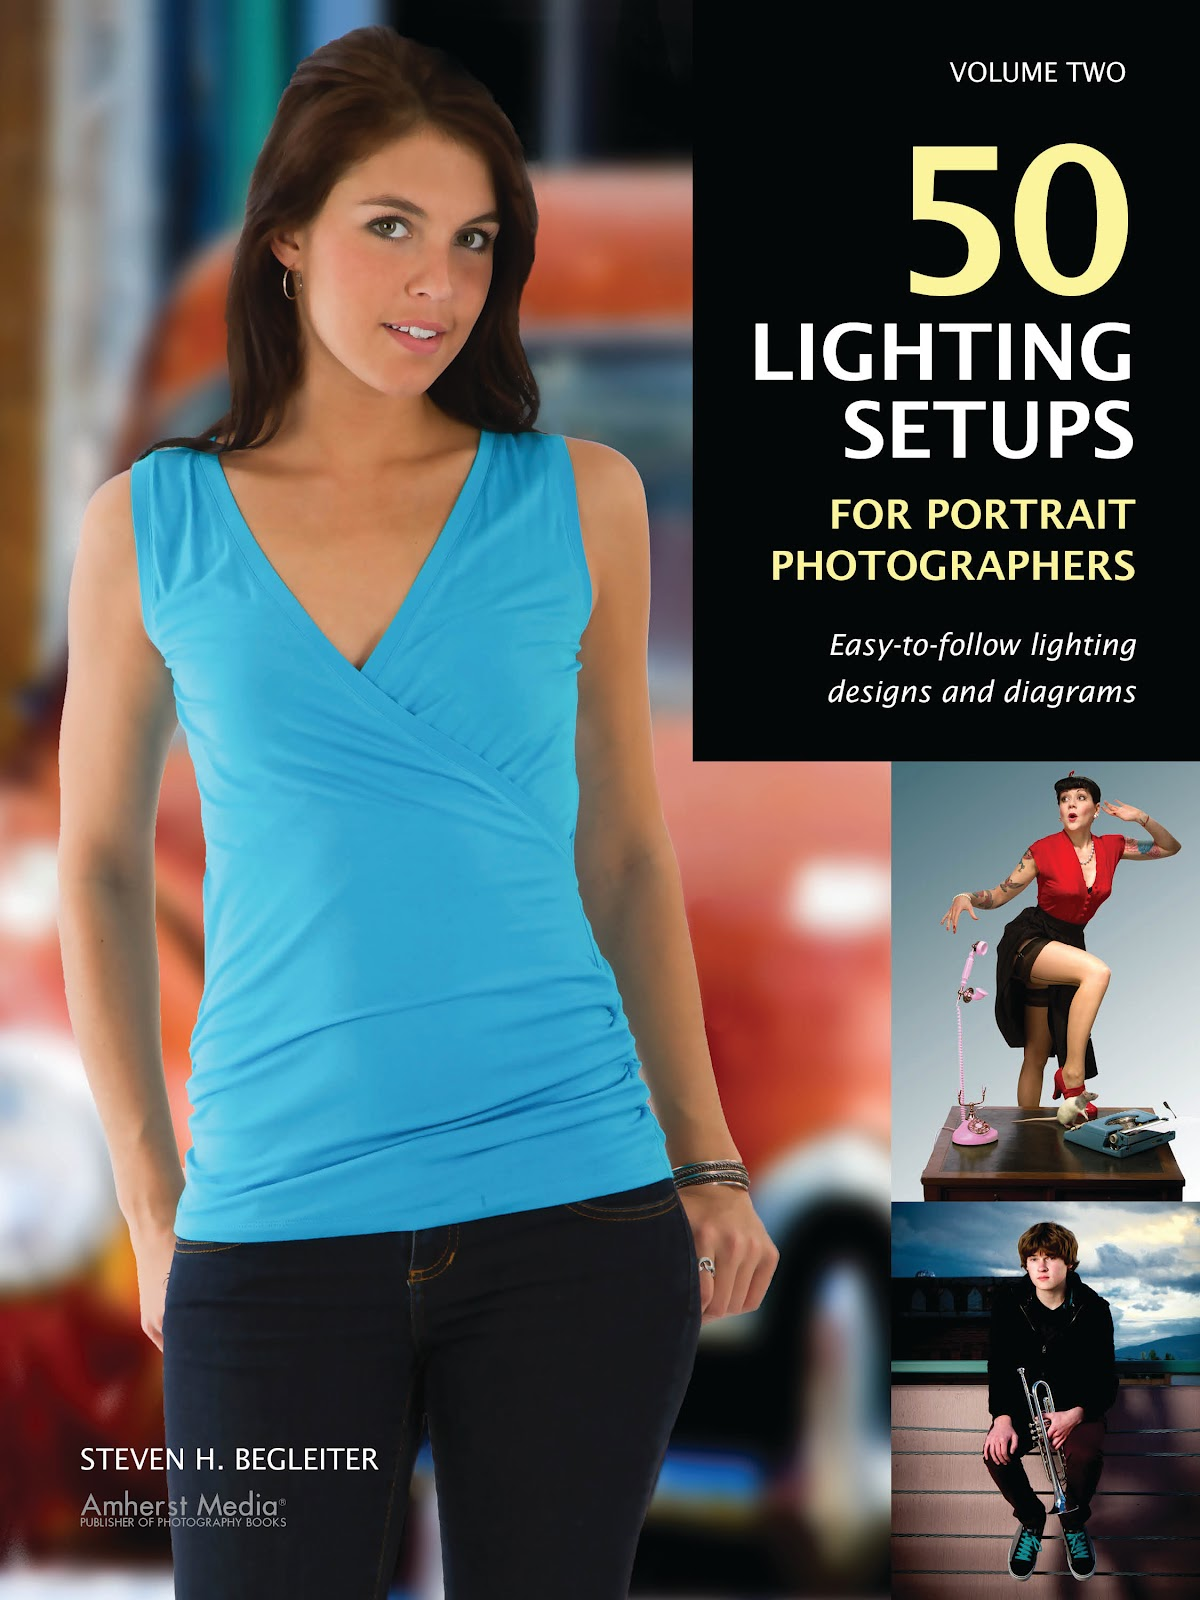 50 Lighting Setups for Portrait Photographers Easy-to-Follow Lighting Designs and Diagrams by Steven H. Begleiter eBook